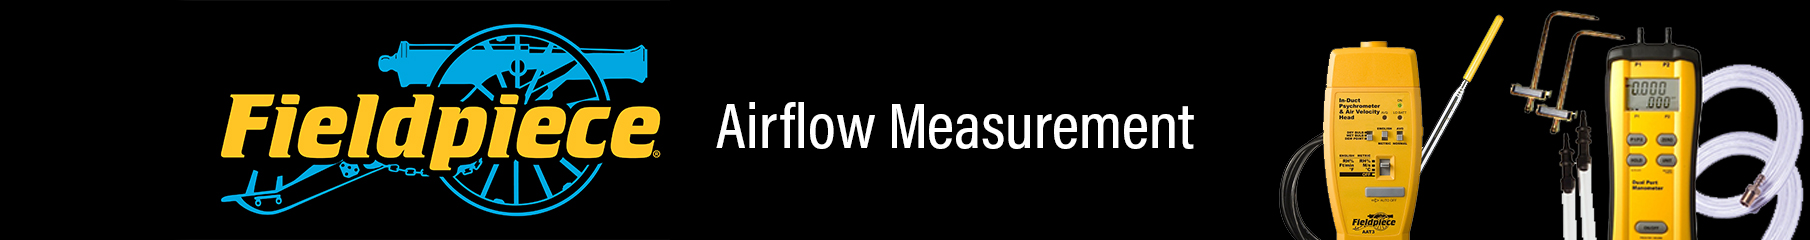 Airflow Measurement Banner